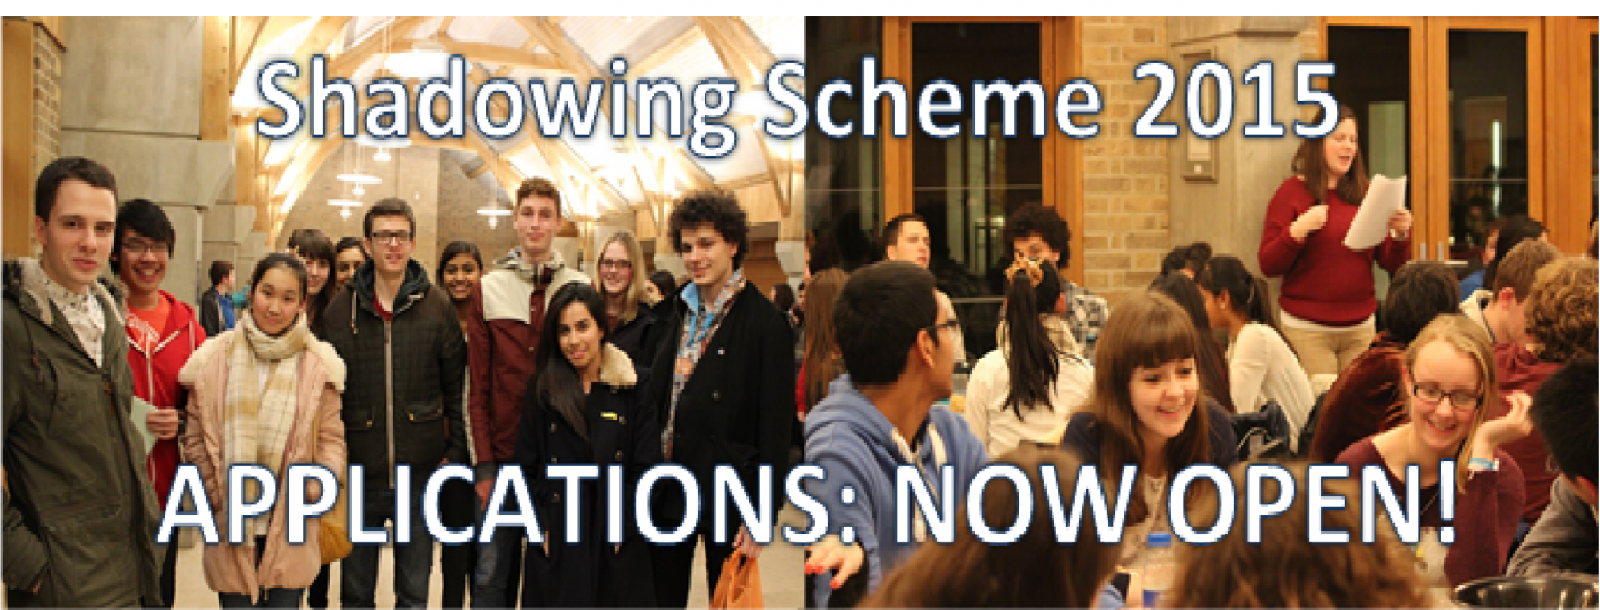 Shadowing Scheme Applications Now Open!